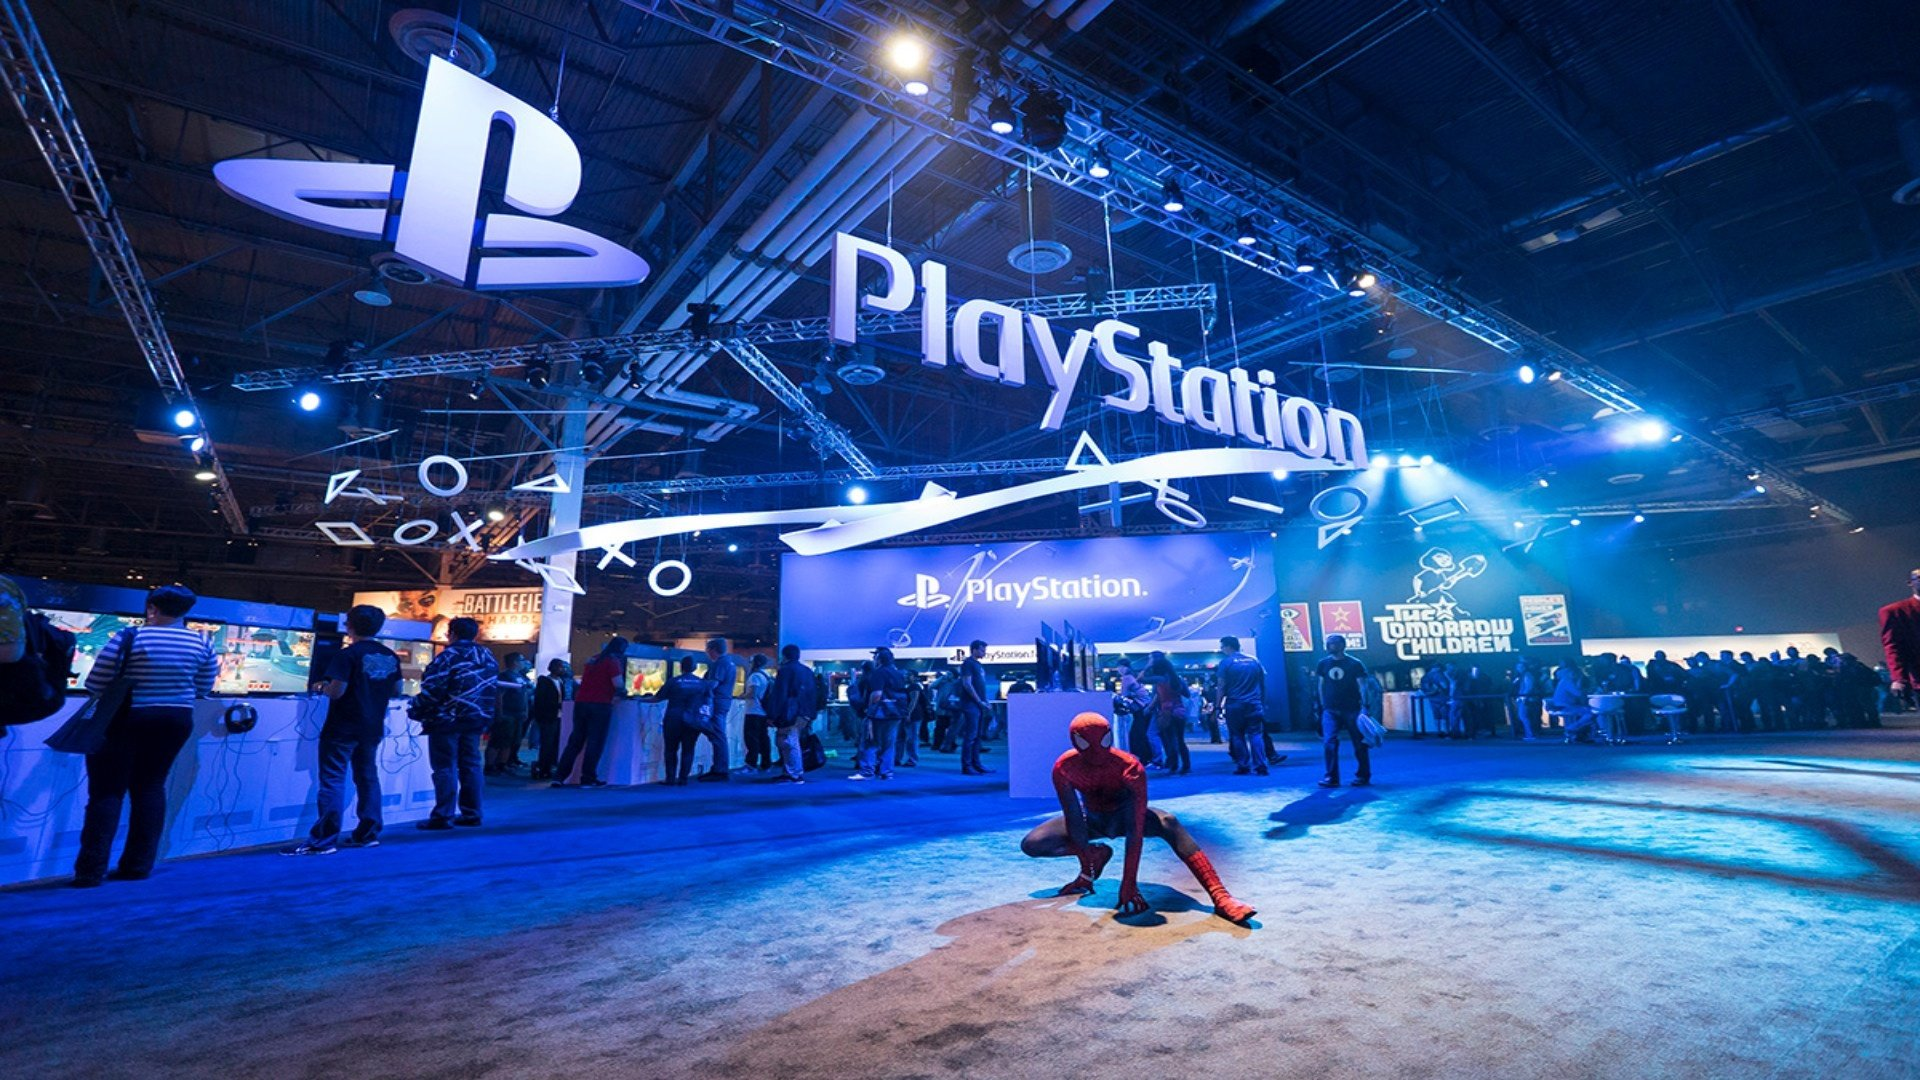 PS4 to improve voice chat with bigger parties and better audio quality